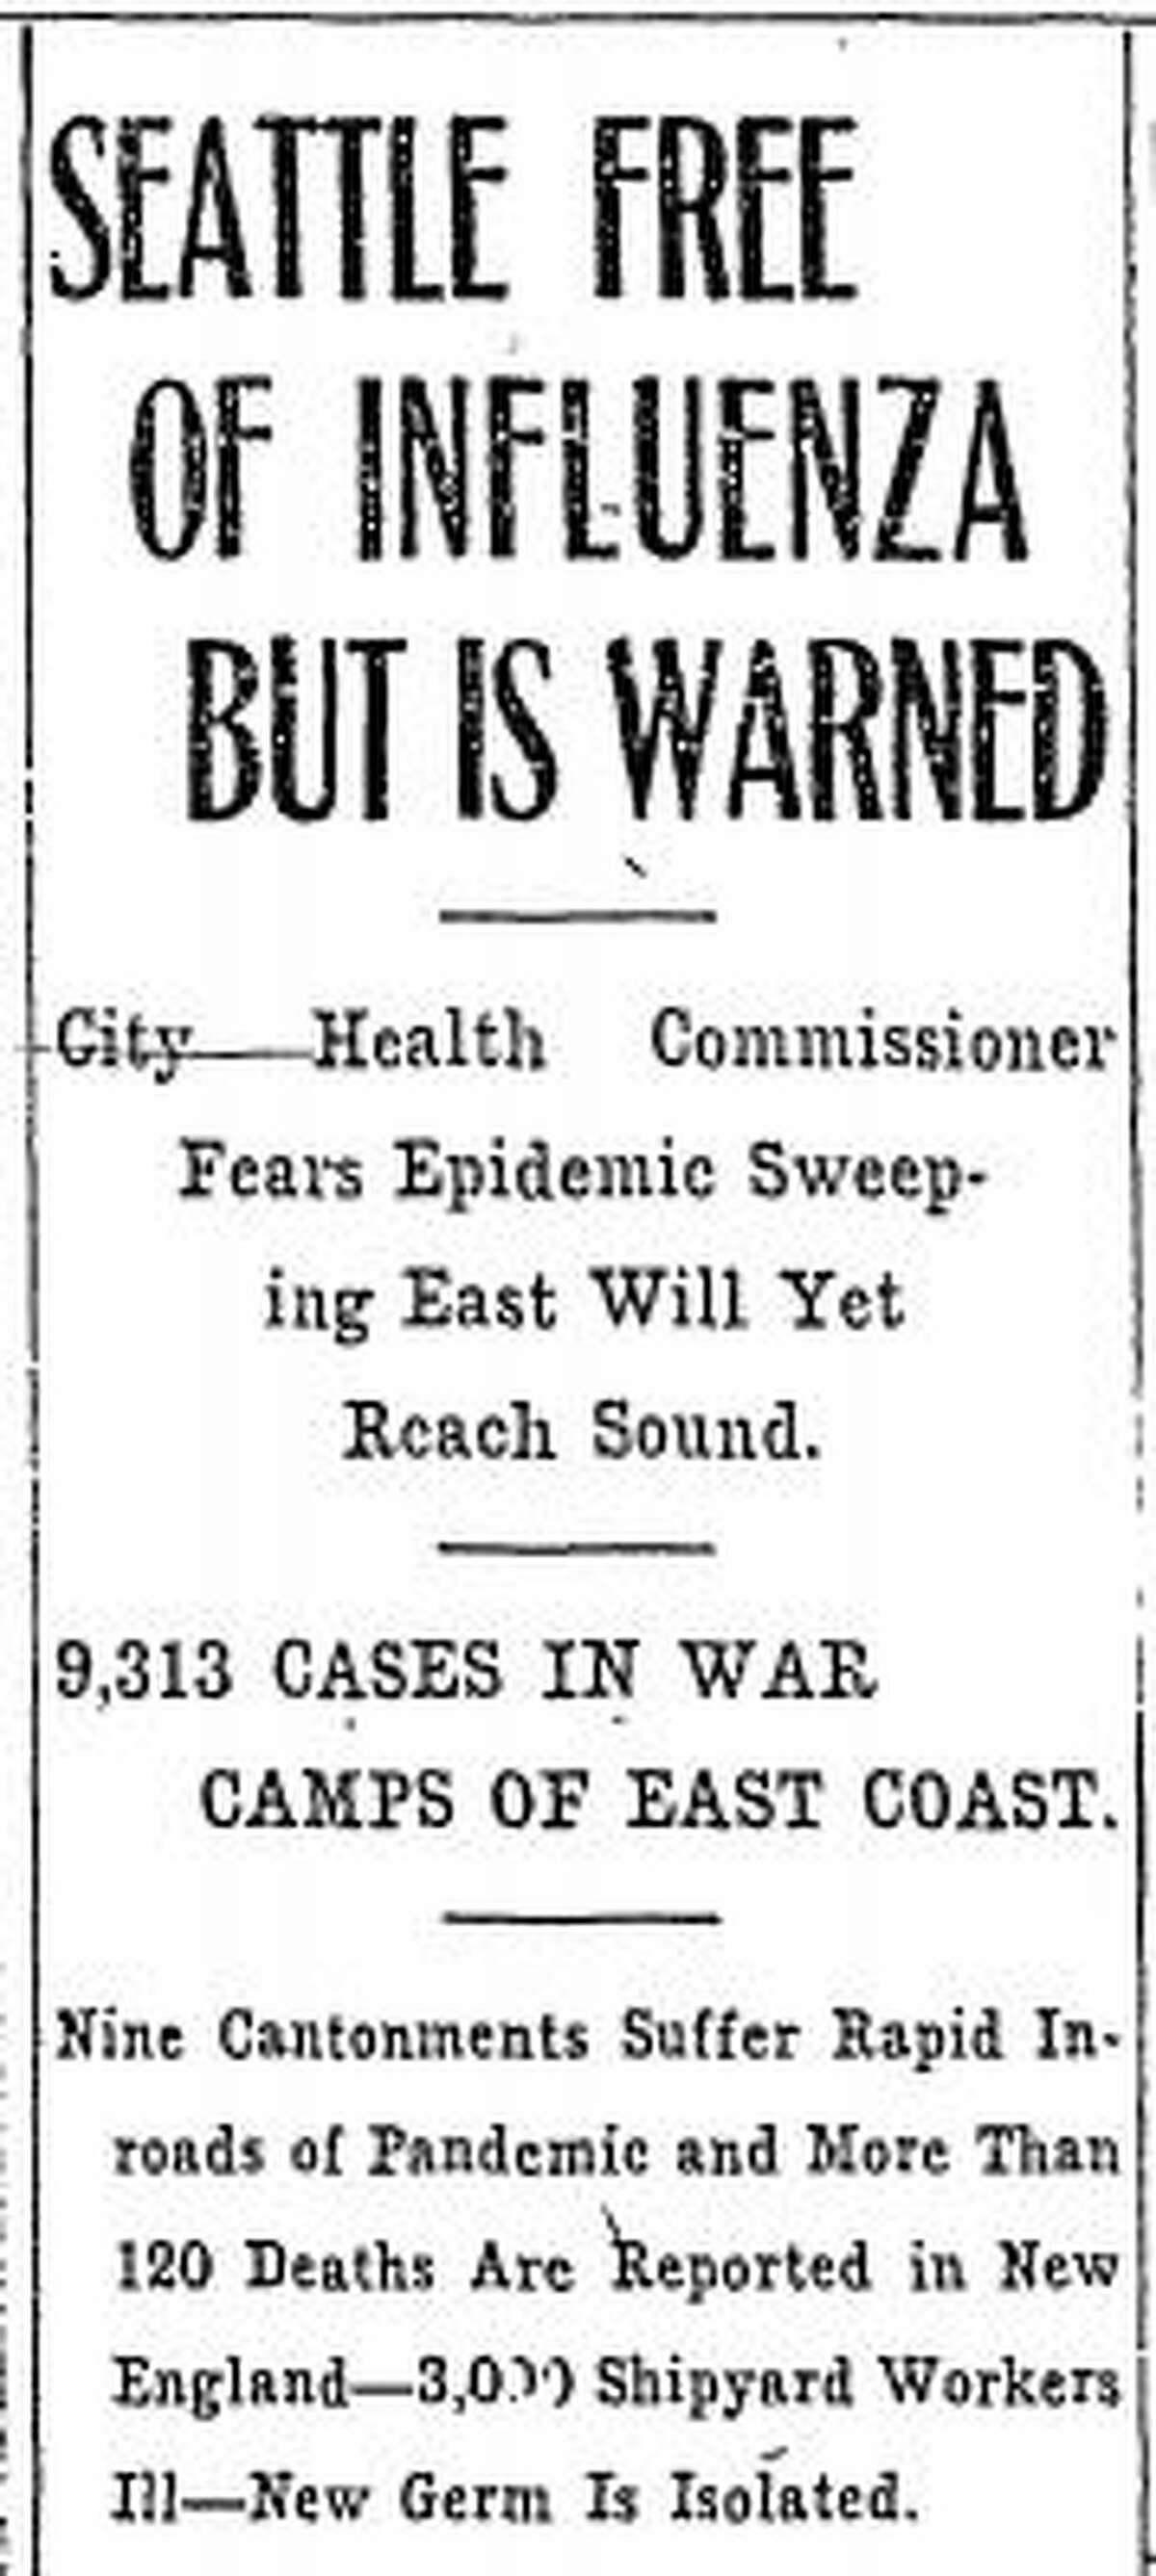 The first mentions of the Spanish flu in Seattle were related to reported cases of influenza at Fort Lewis. In the beginning of the pandemic, doctors had trouble distinguishing the Spanish flu from regular cases of influenza.